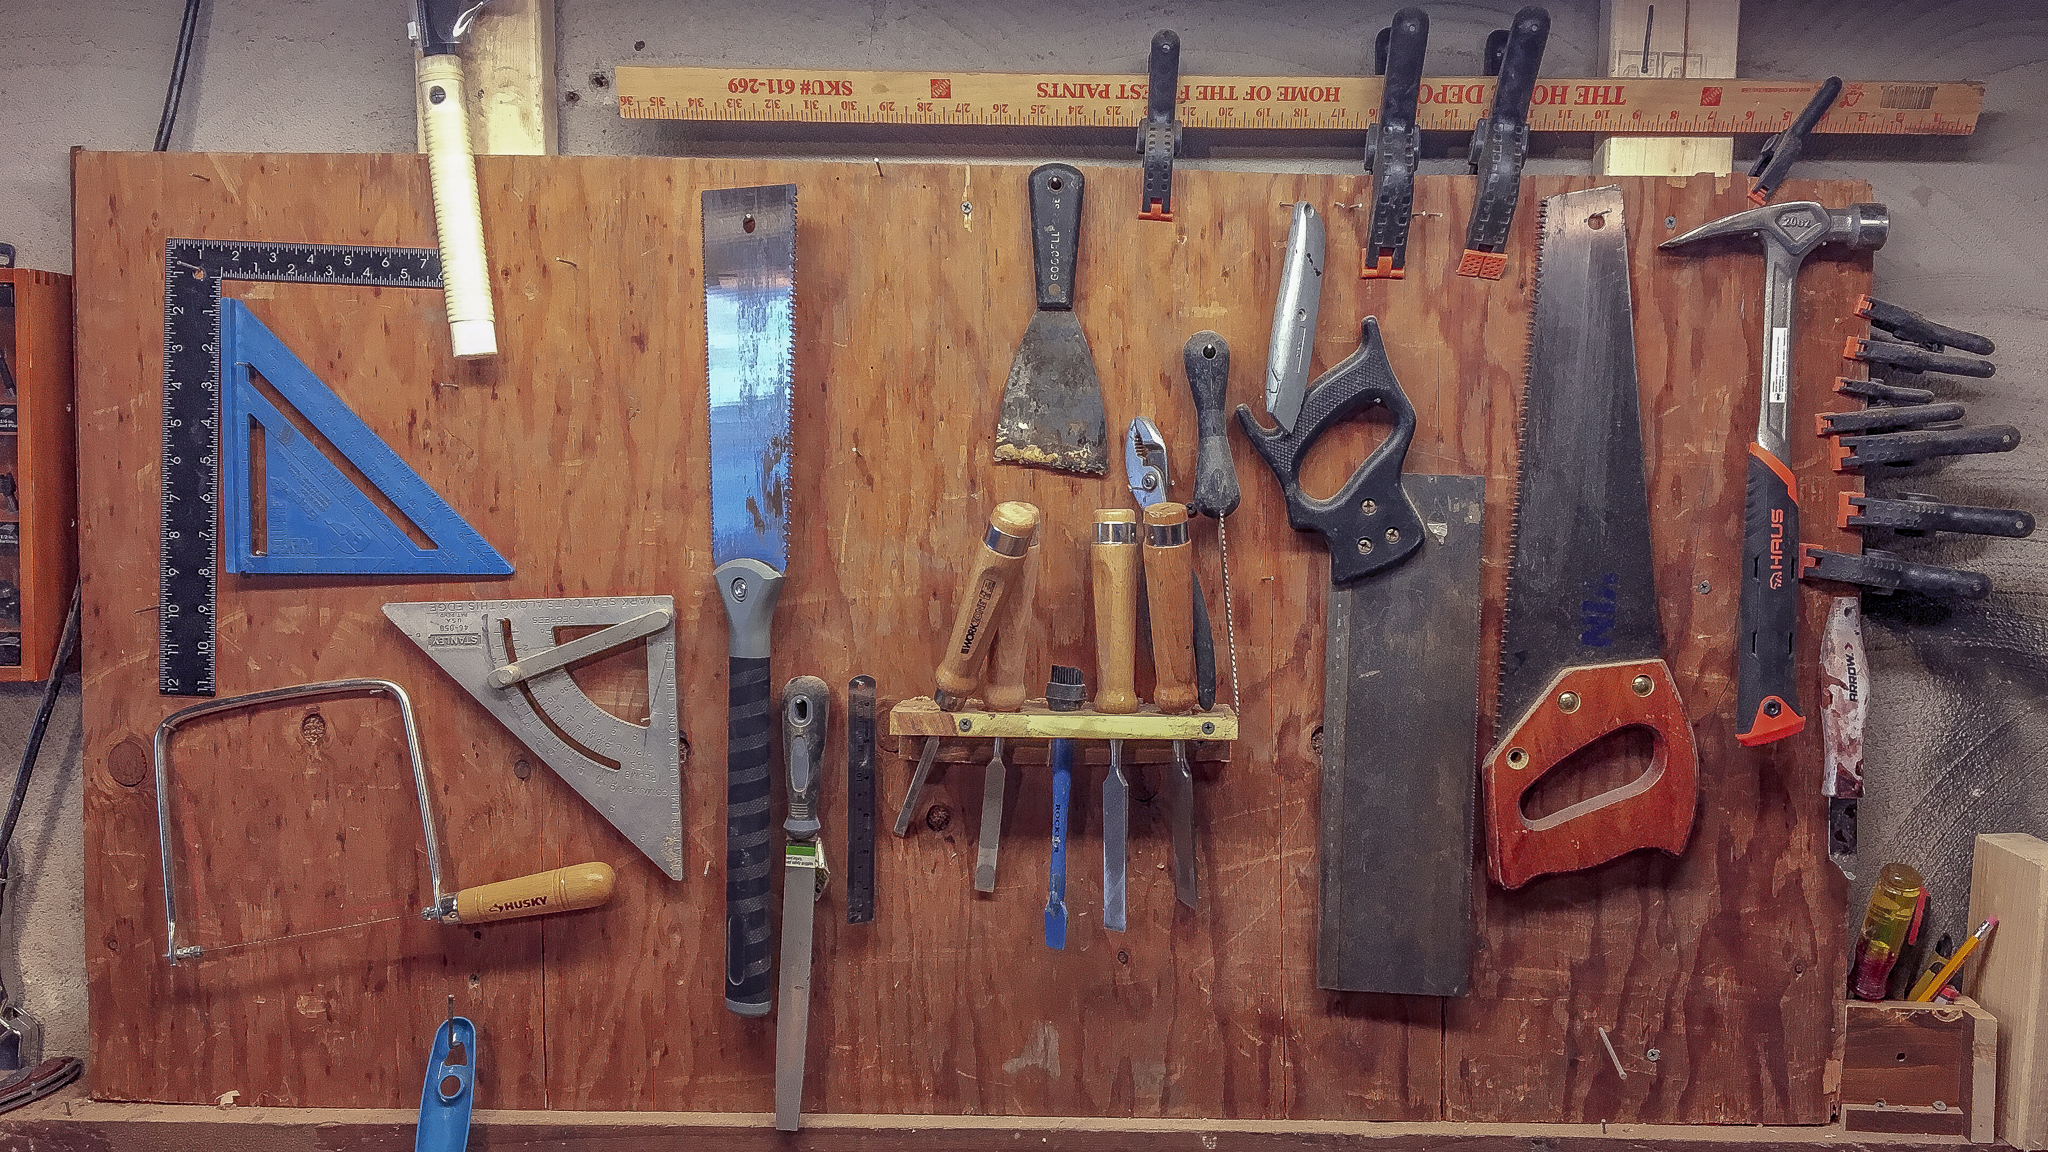 The Minimalist Diy Woodworking Toolkit For Under 200 Living From